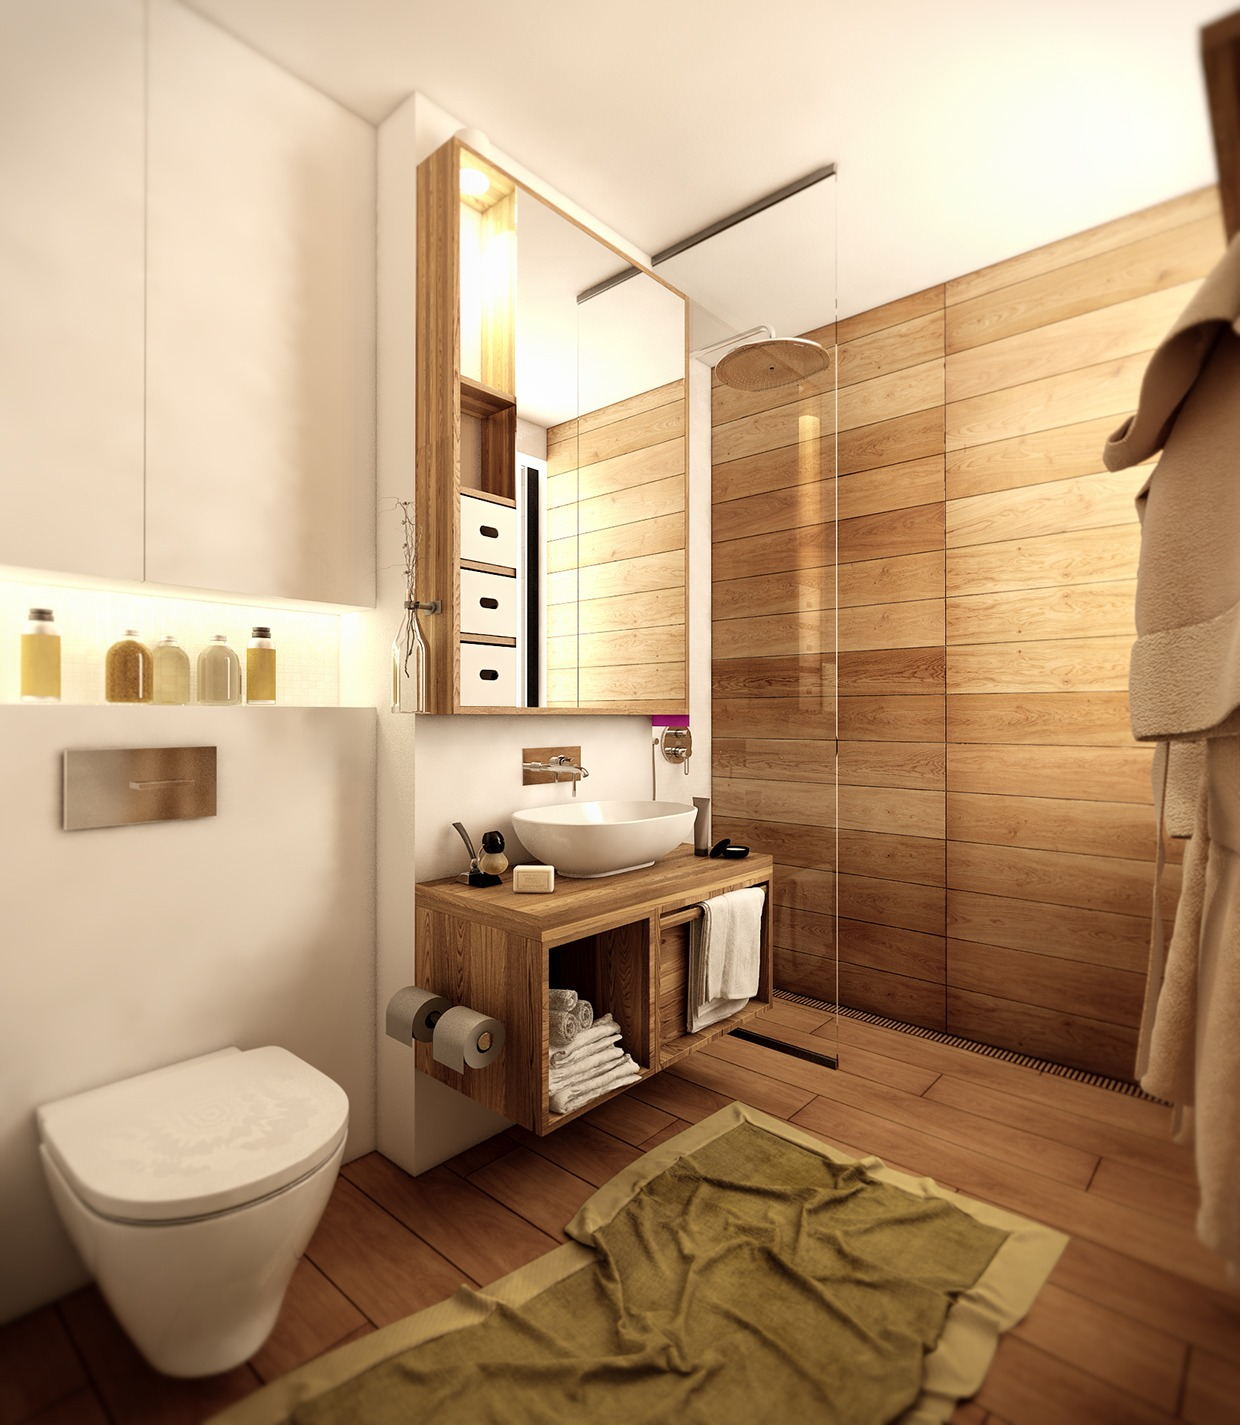 Wood floor bathroom interior design ideas for Hardwood floor in bathroom